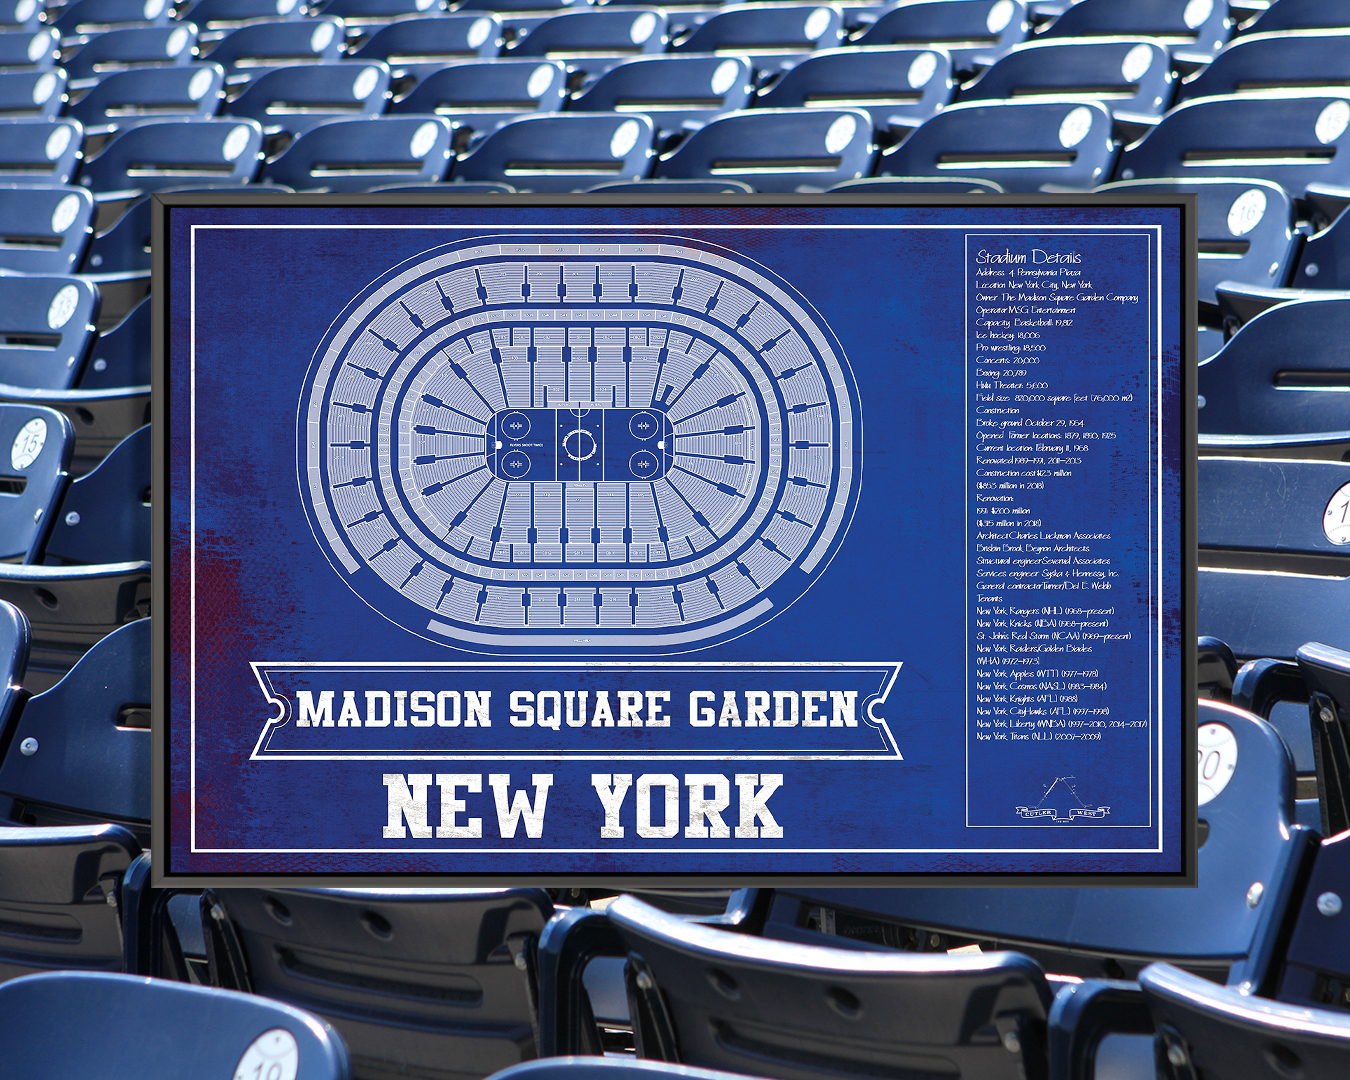 Blueprint of Madison Square Garden in New York with stadium details on the right side